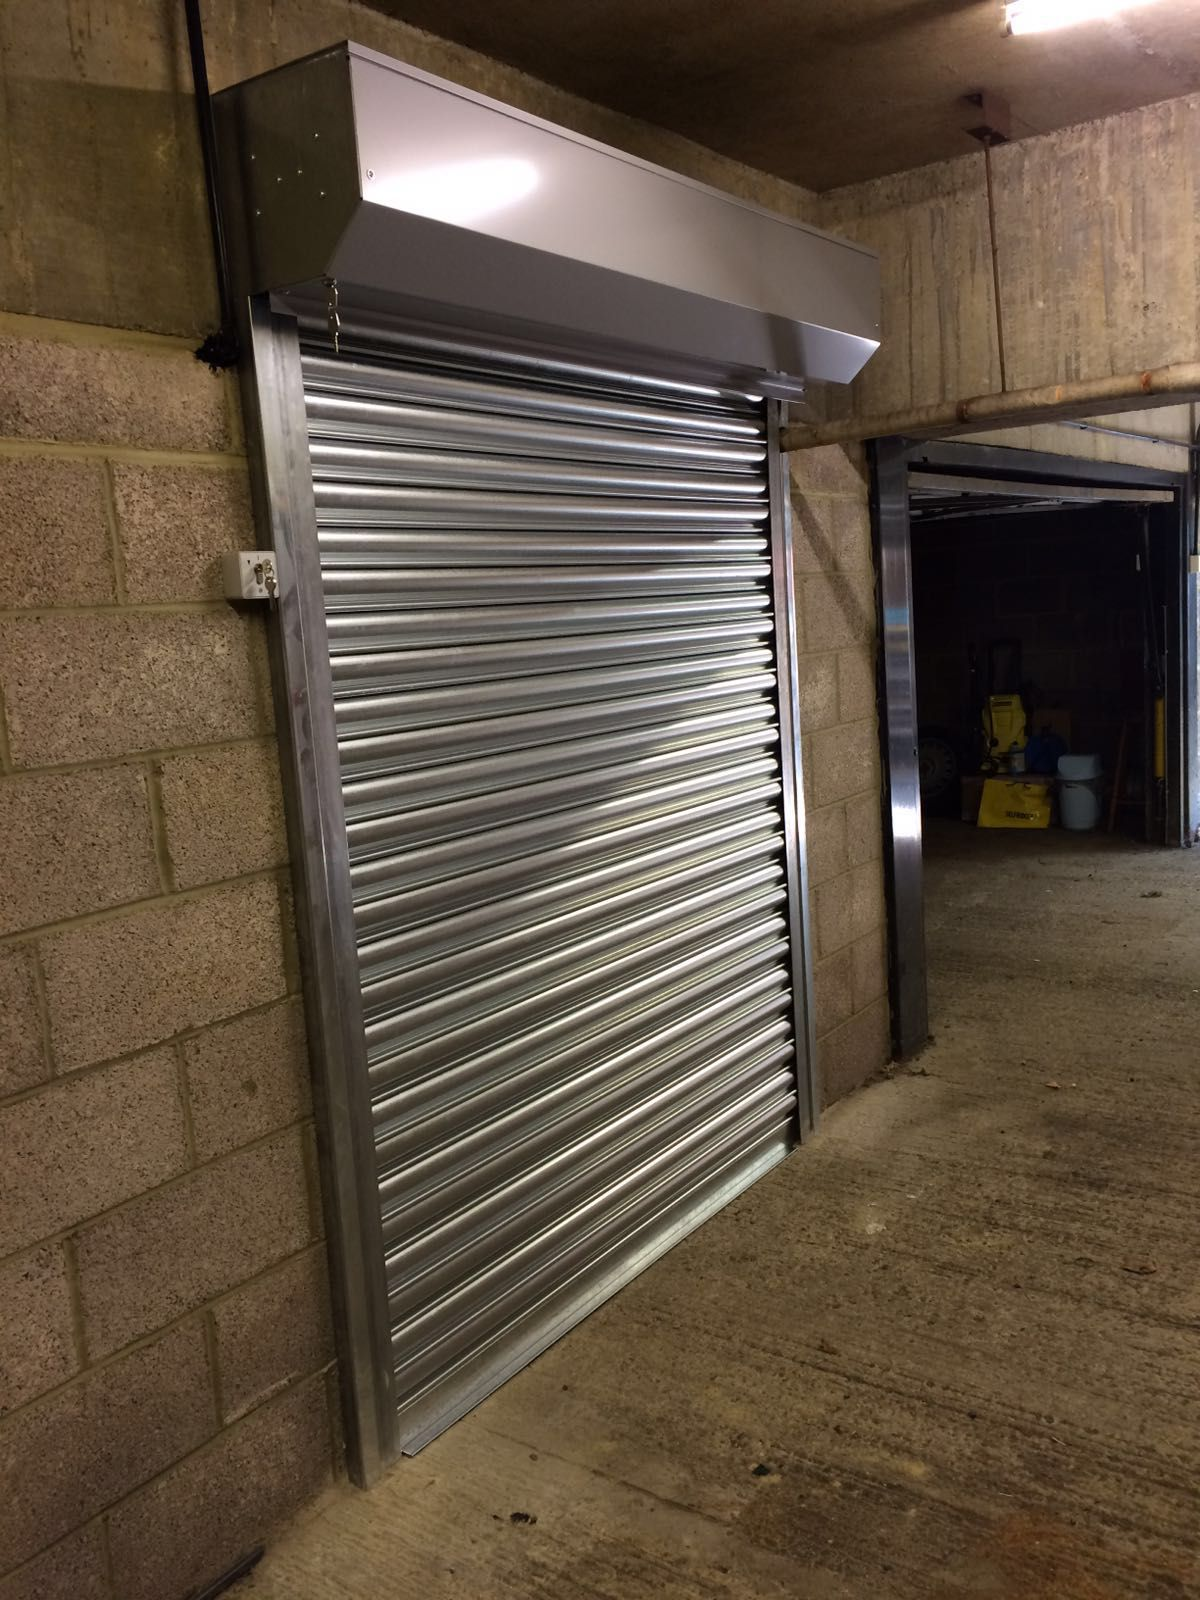 Our Rsg5000 Galvanised Steel Roller Shutter Fitted To A Commercial Storage Room In North London Roller Shutters Shutters Galvanized Steel